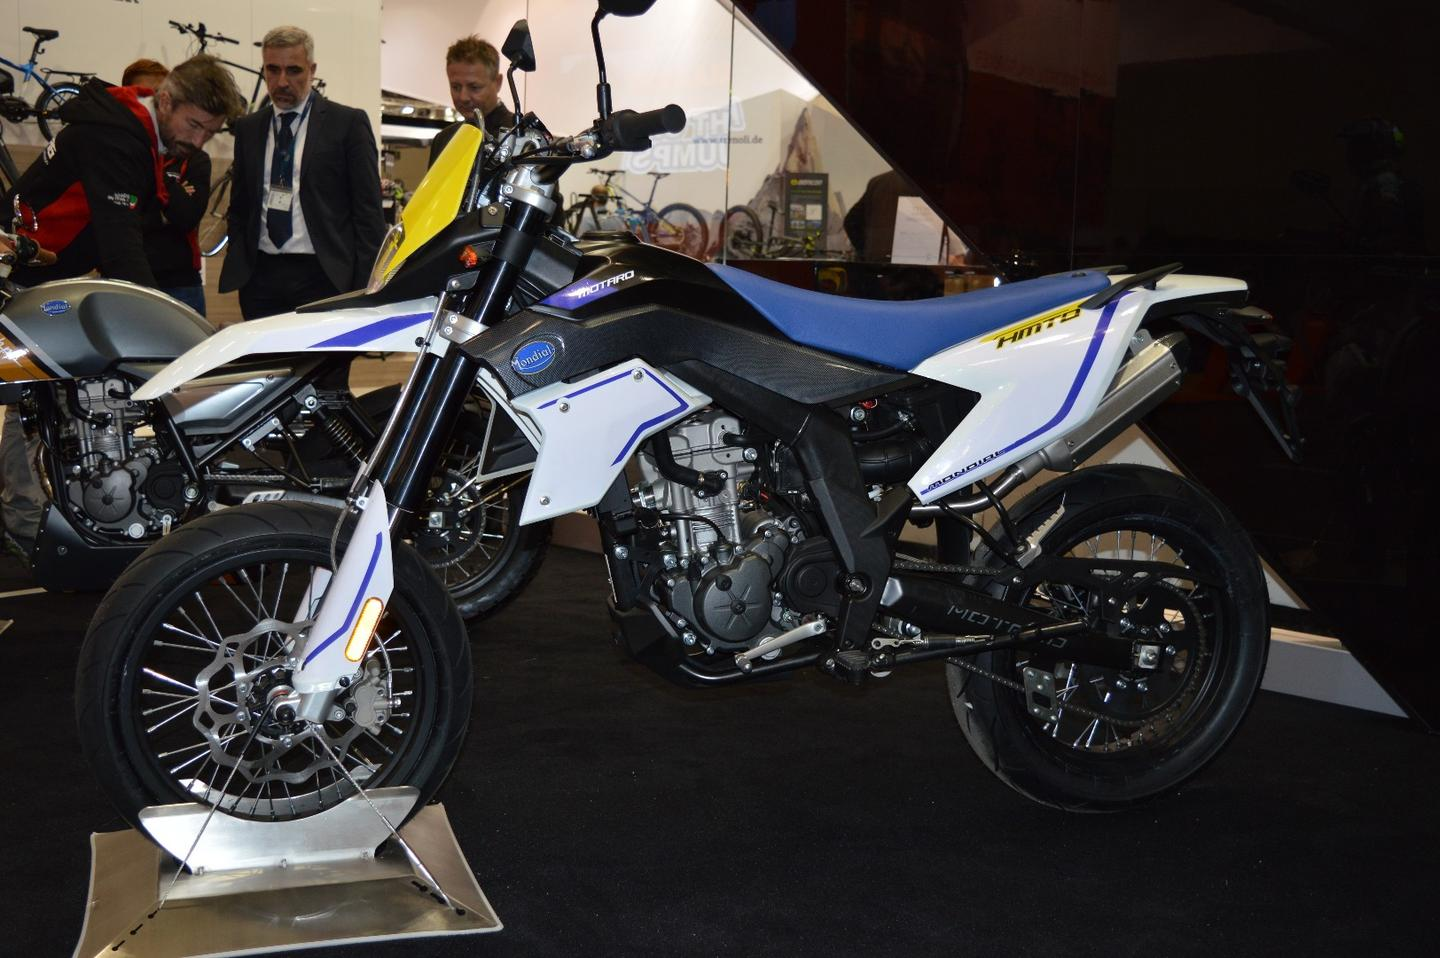 FB Mondial occupied a small, dark corner at Intermot 2016 to display the Hipster 125 and a new supermoto version built on the same base